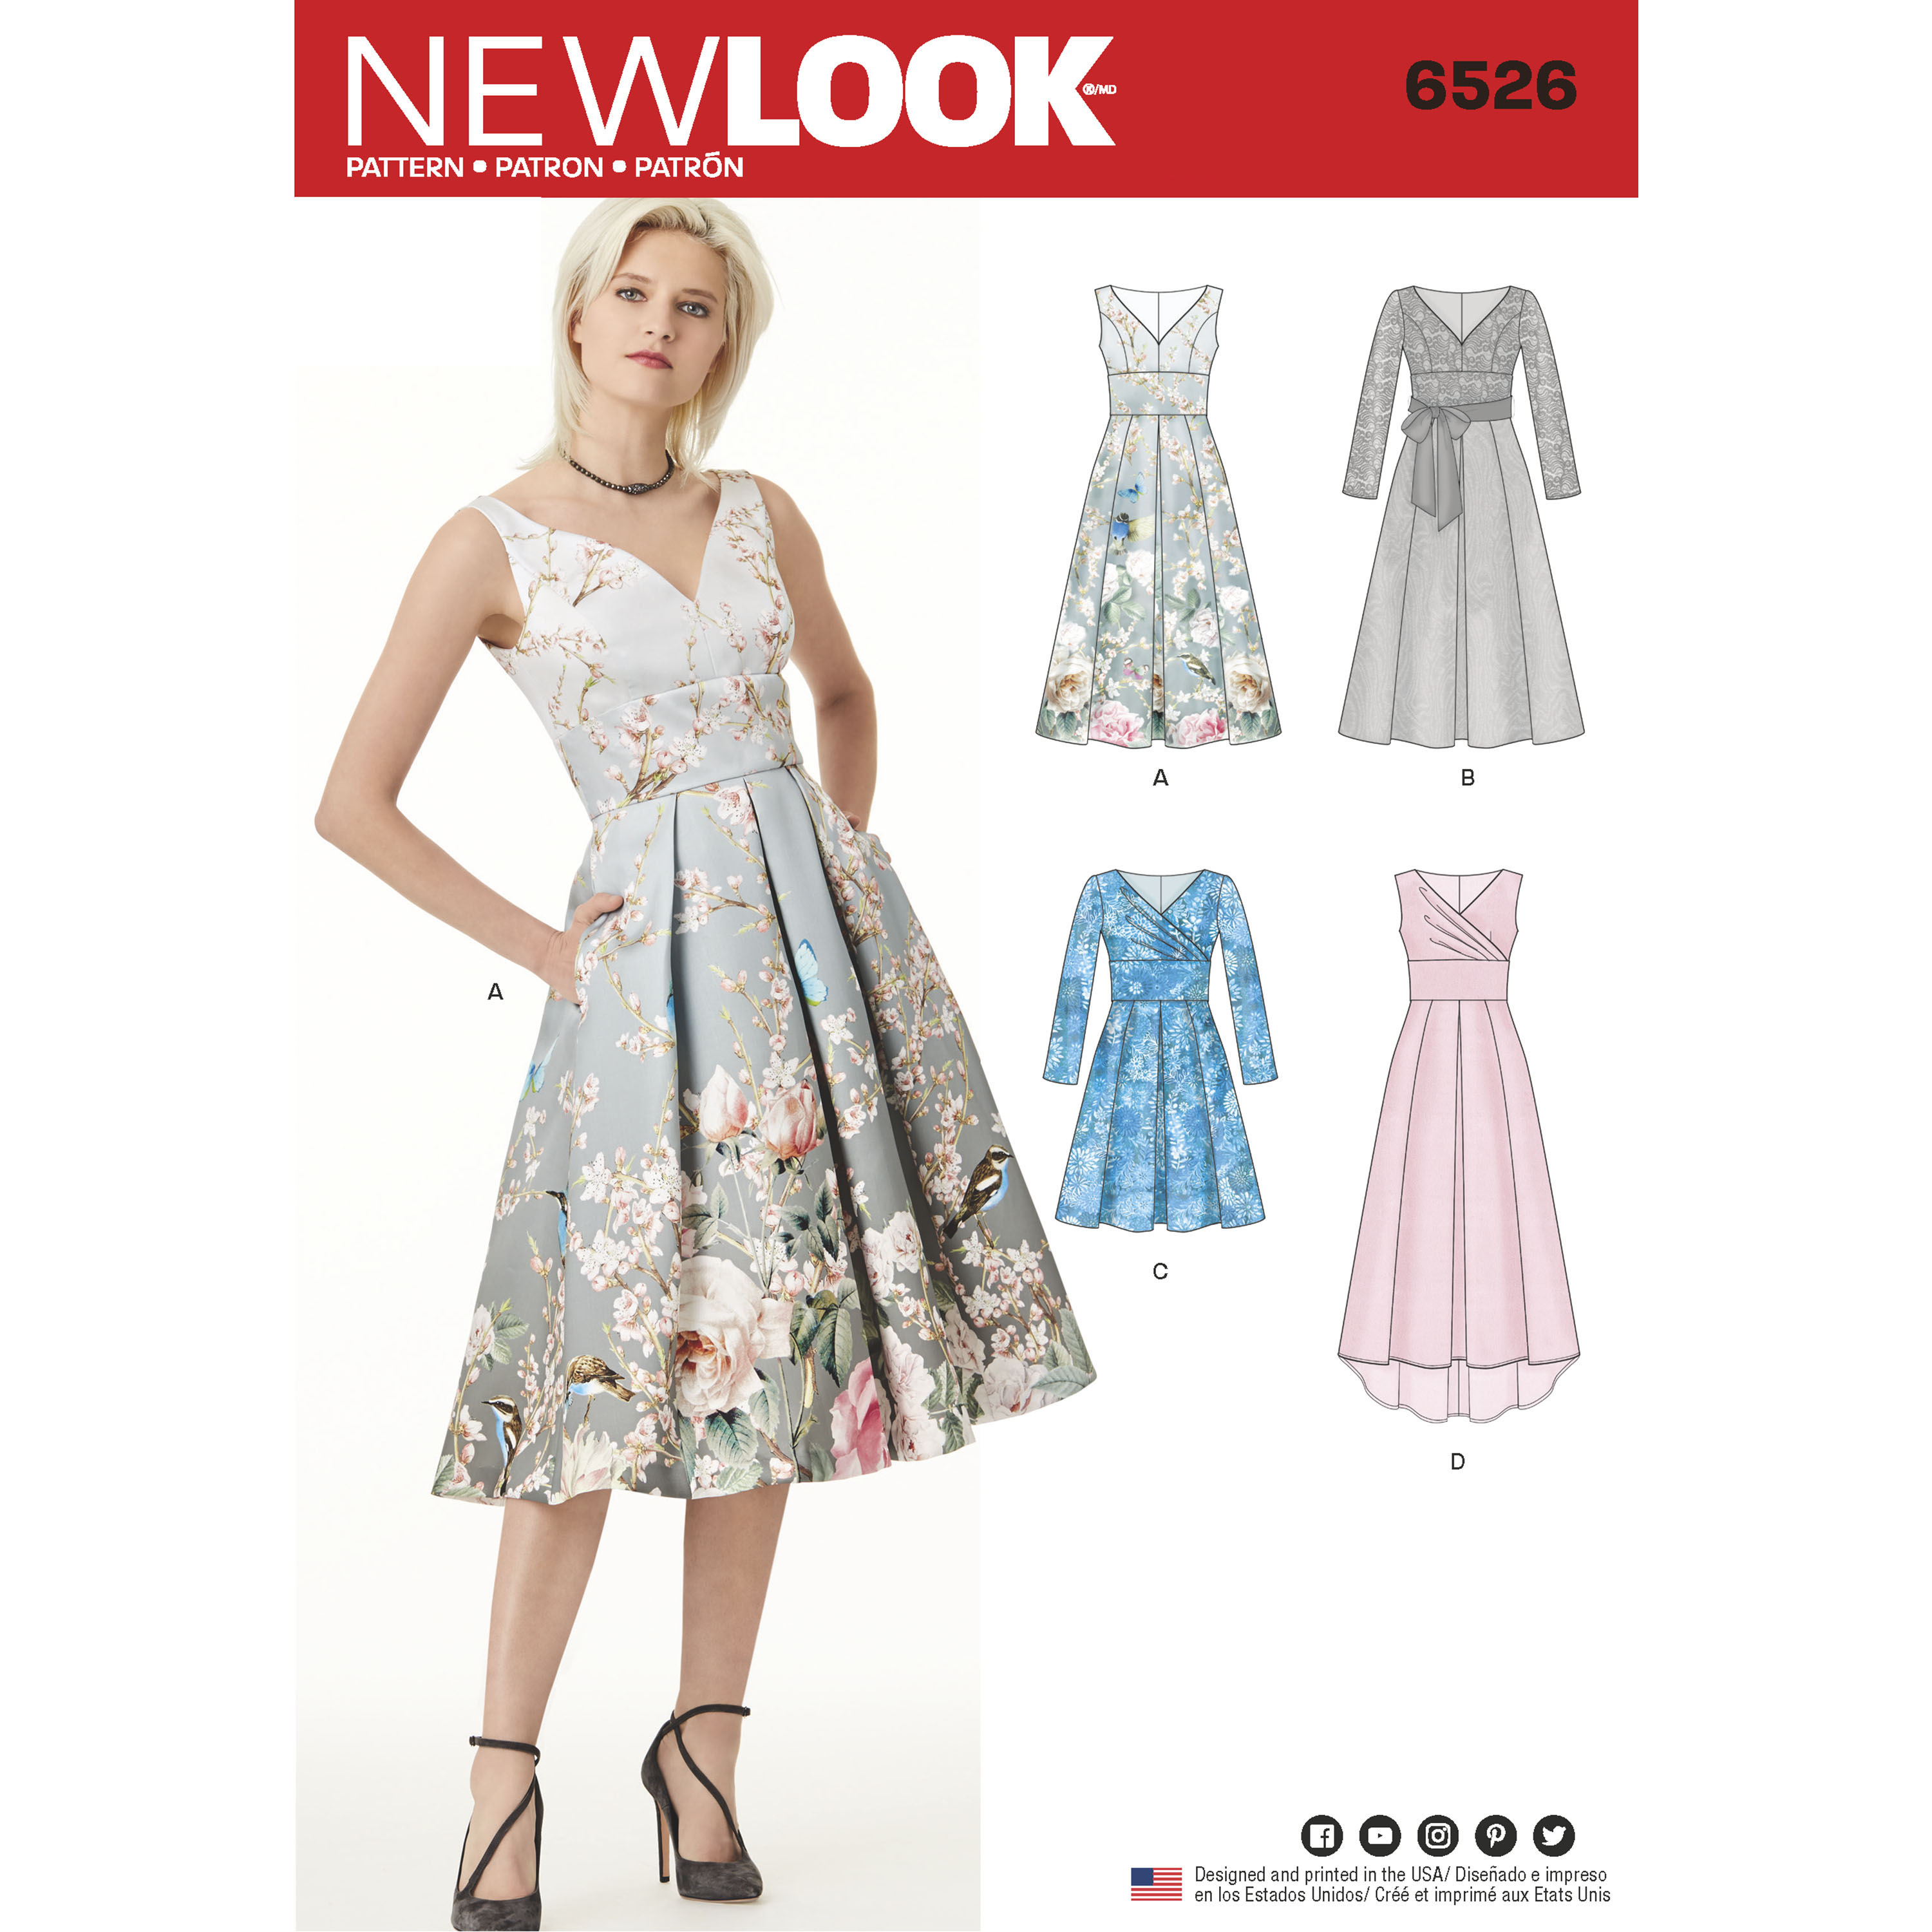 2b3d17420cd New Look New Look Pattern 6526 Misses  Dress with Bodice Variations